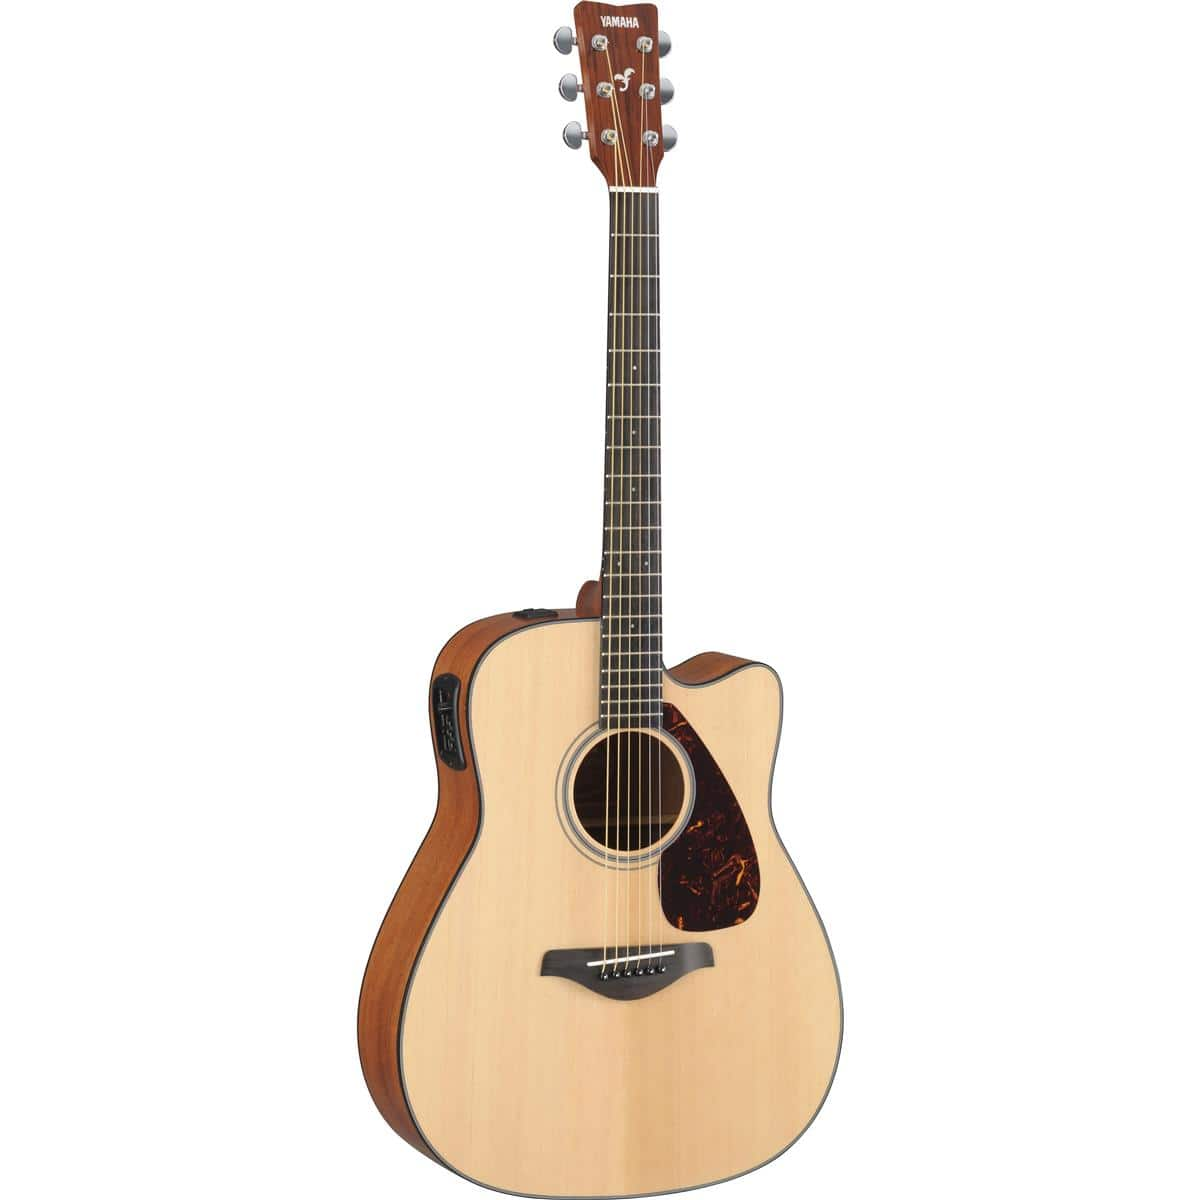 Yamaha FGX700SC 6 String Solid Top Cutaway Acoustic-Electric Guitar $180 after rebate + free shipping